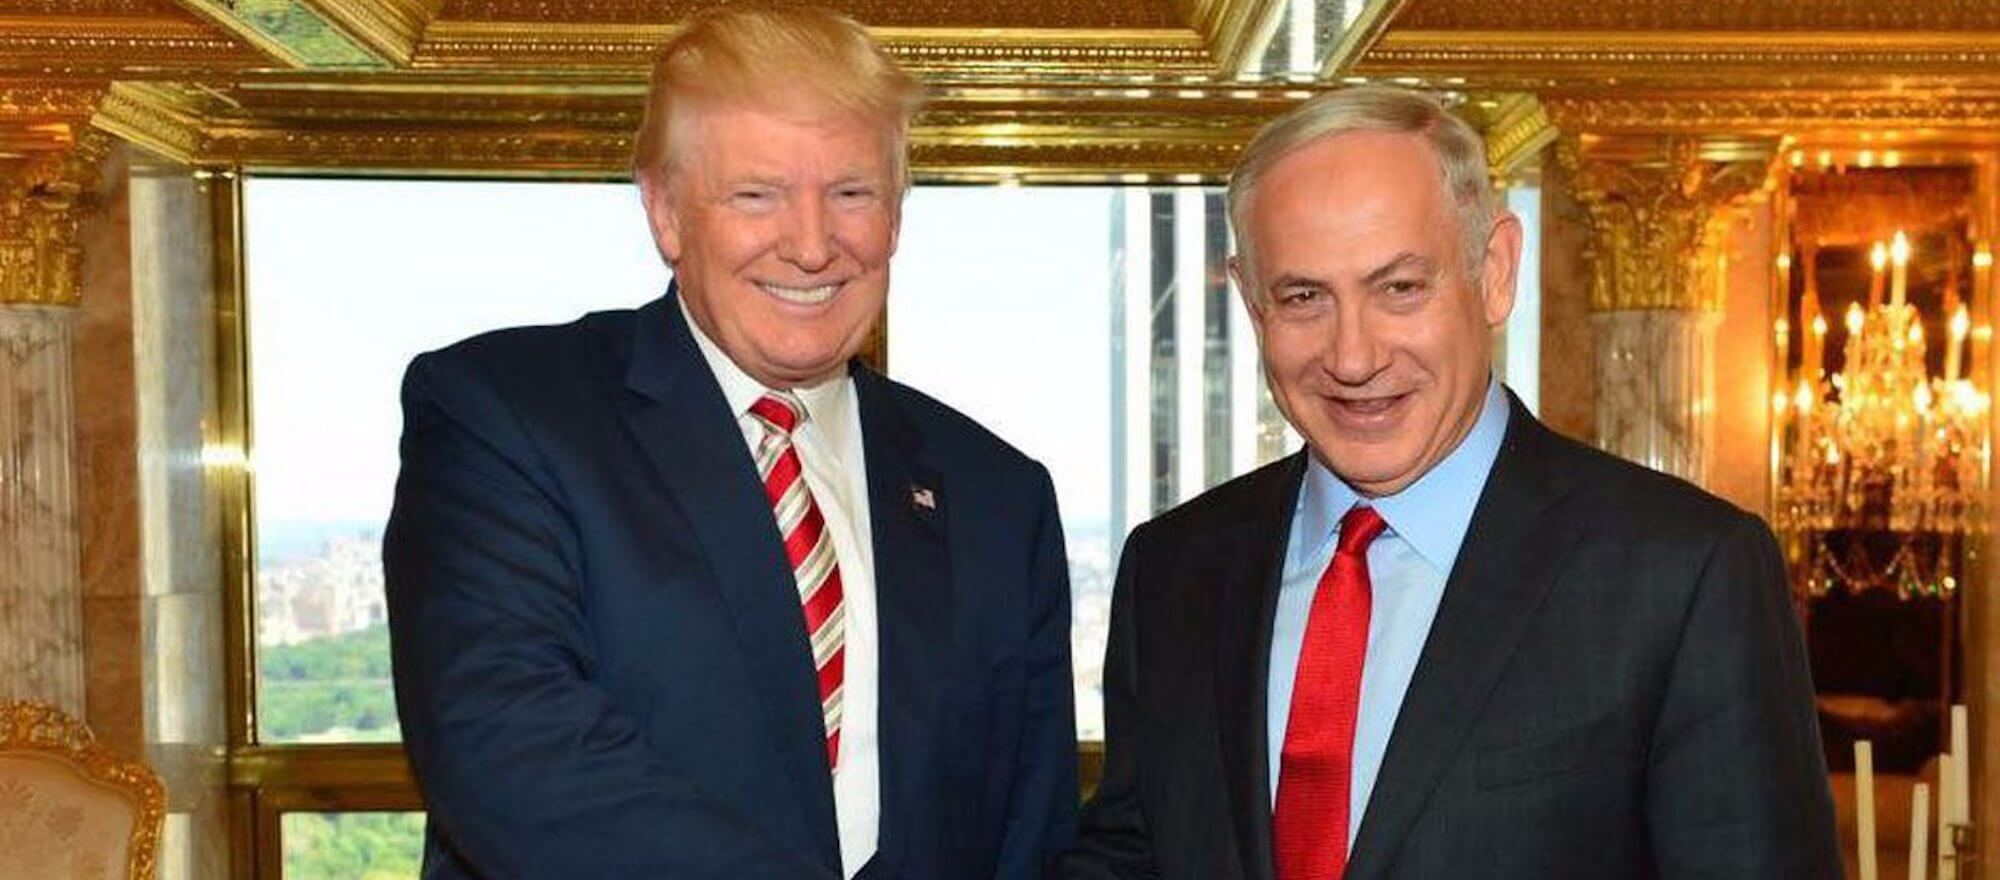 Israel's decision to bar Tlaib/Omar anguishes US supporters, who blame Trump-Netanyahu political tactics